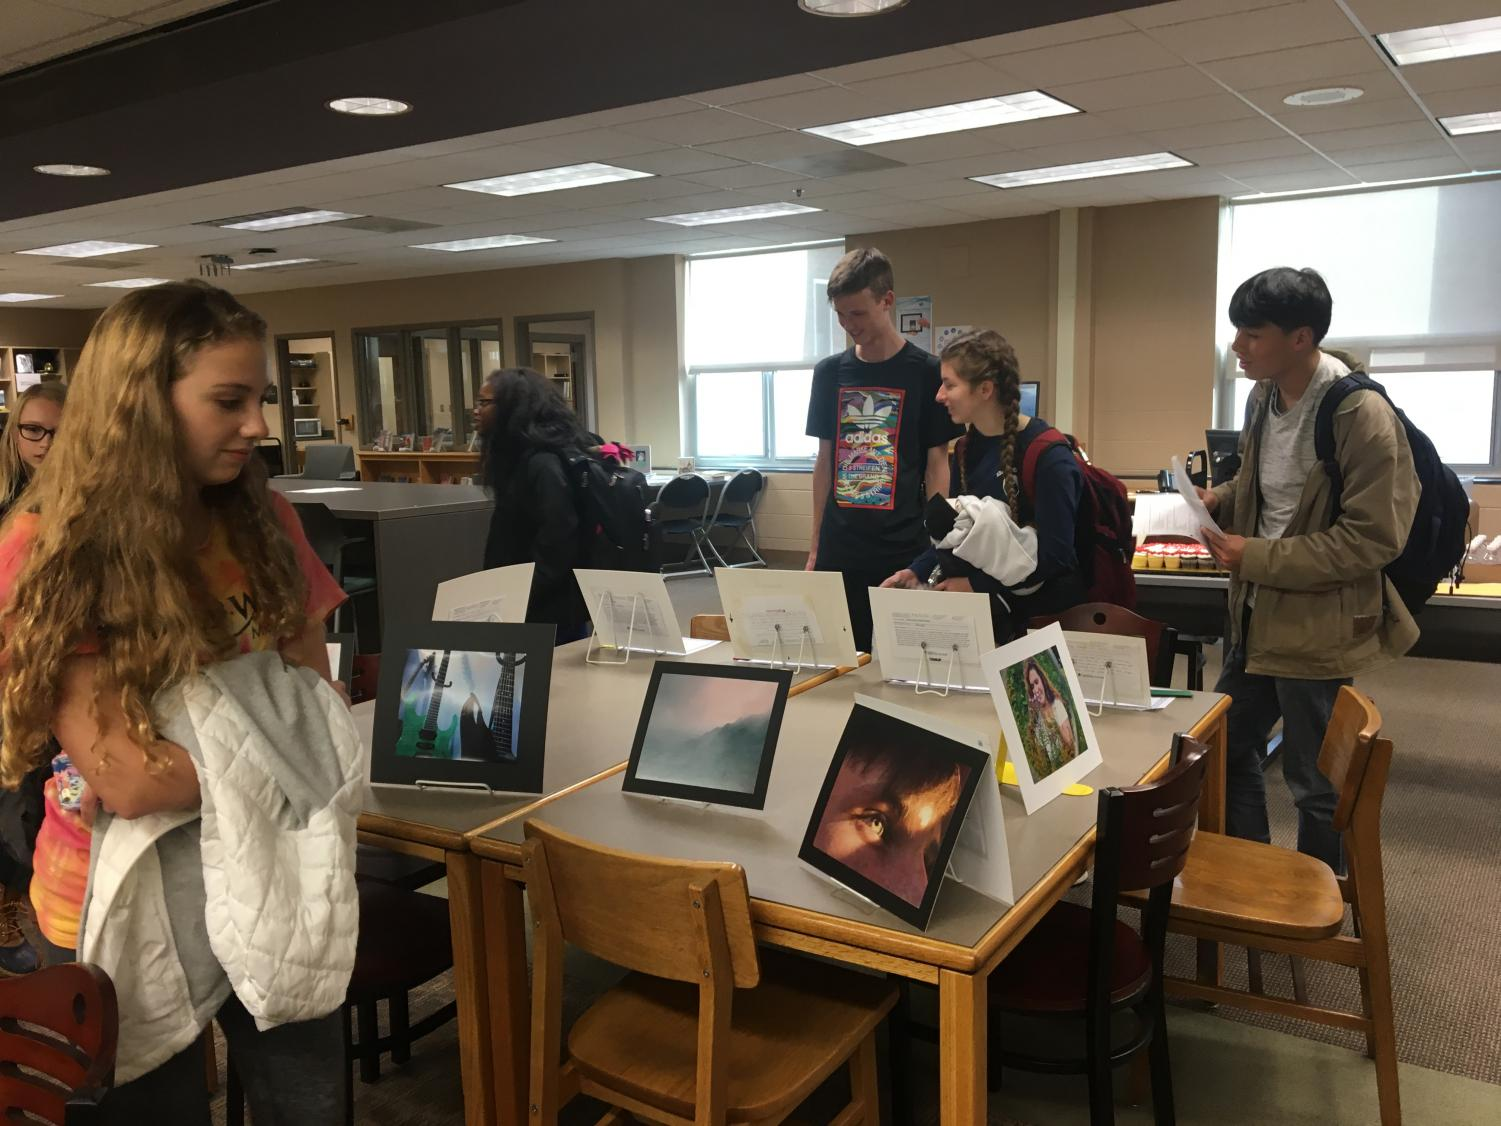 Students admiring the artwork of the Reflections gallery.